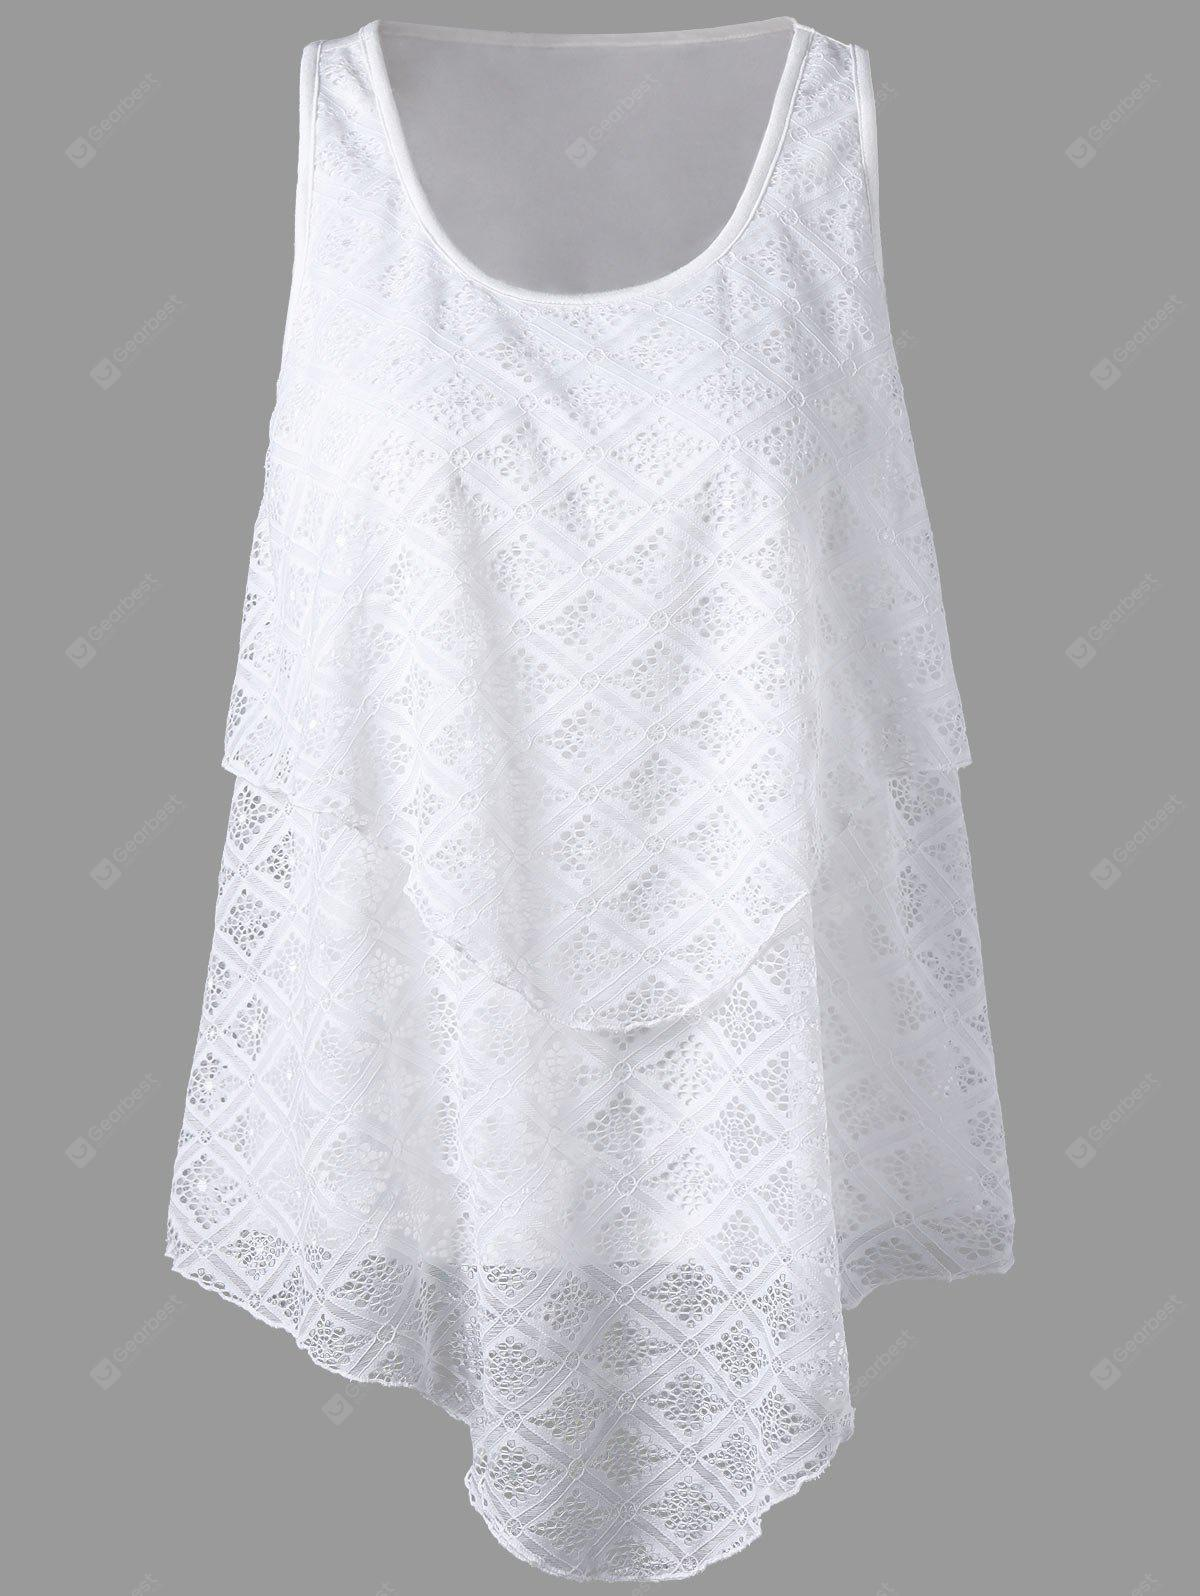 WHITE L U Neck Lace Panel Asymmetrical Top